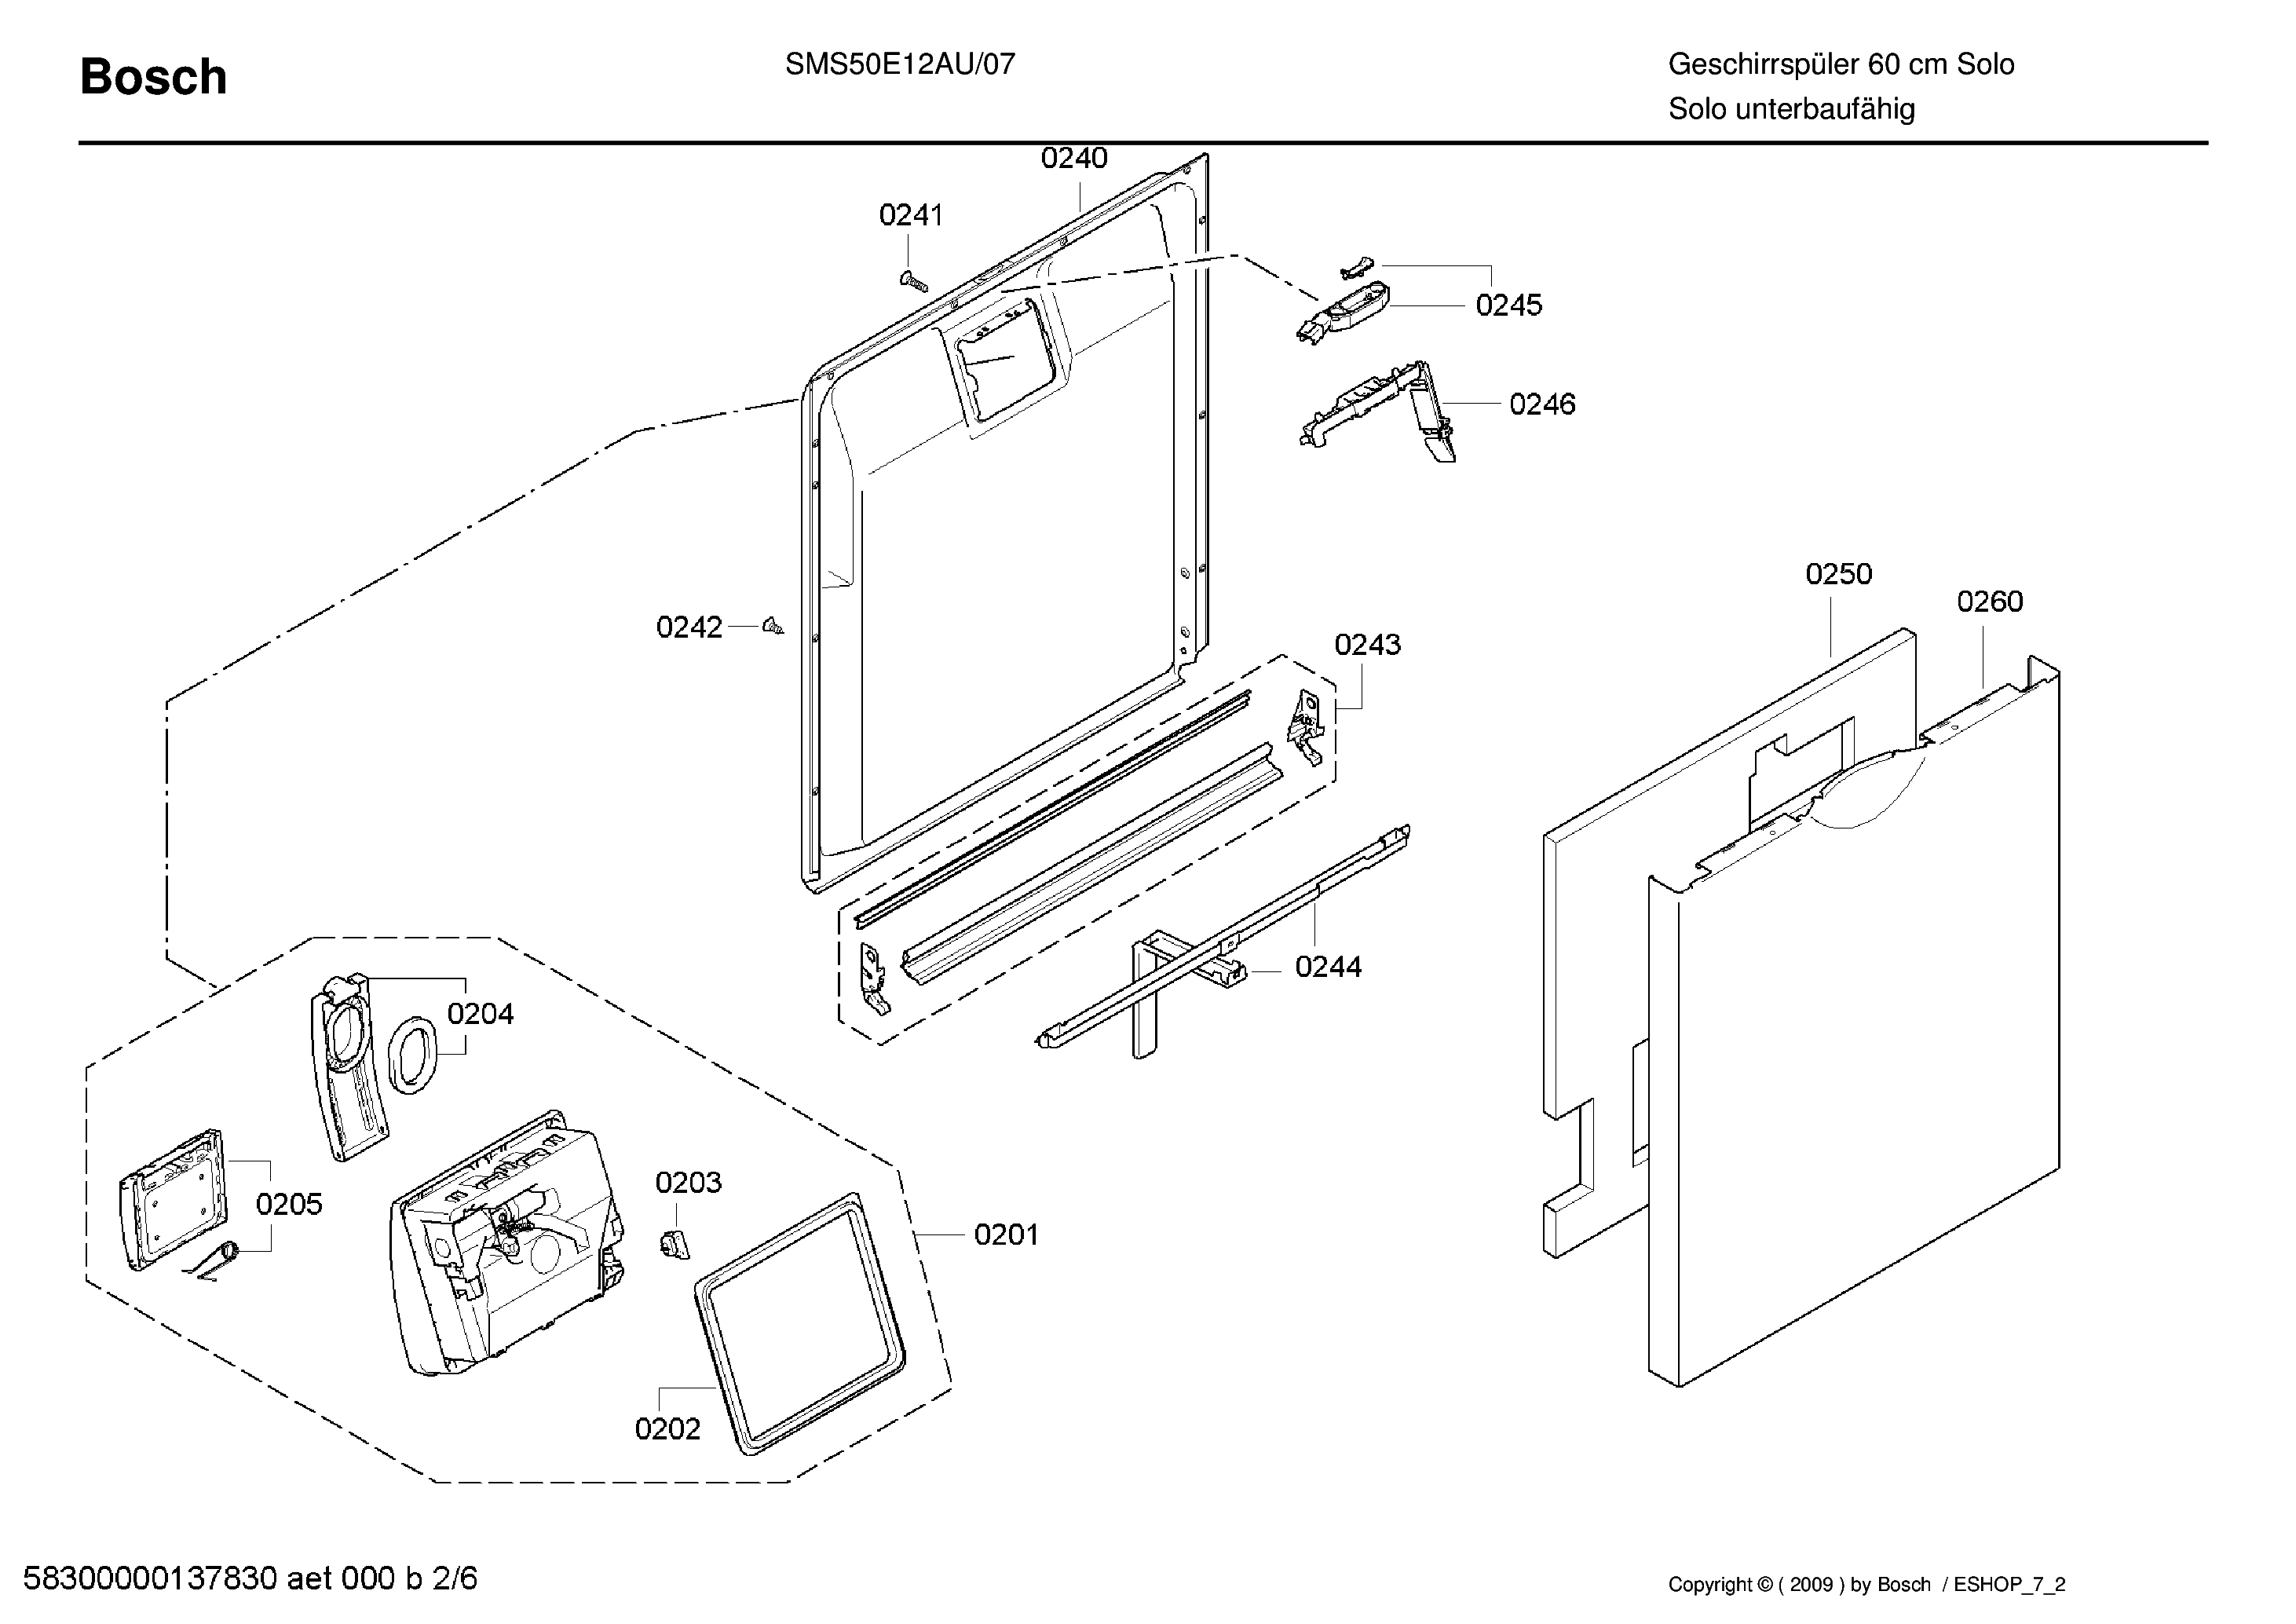 BOSCH SMS50E12AU-07 DISHWASHER EXPLODEDVIEW Service Manual